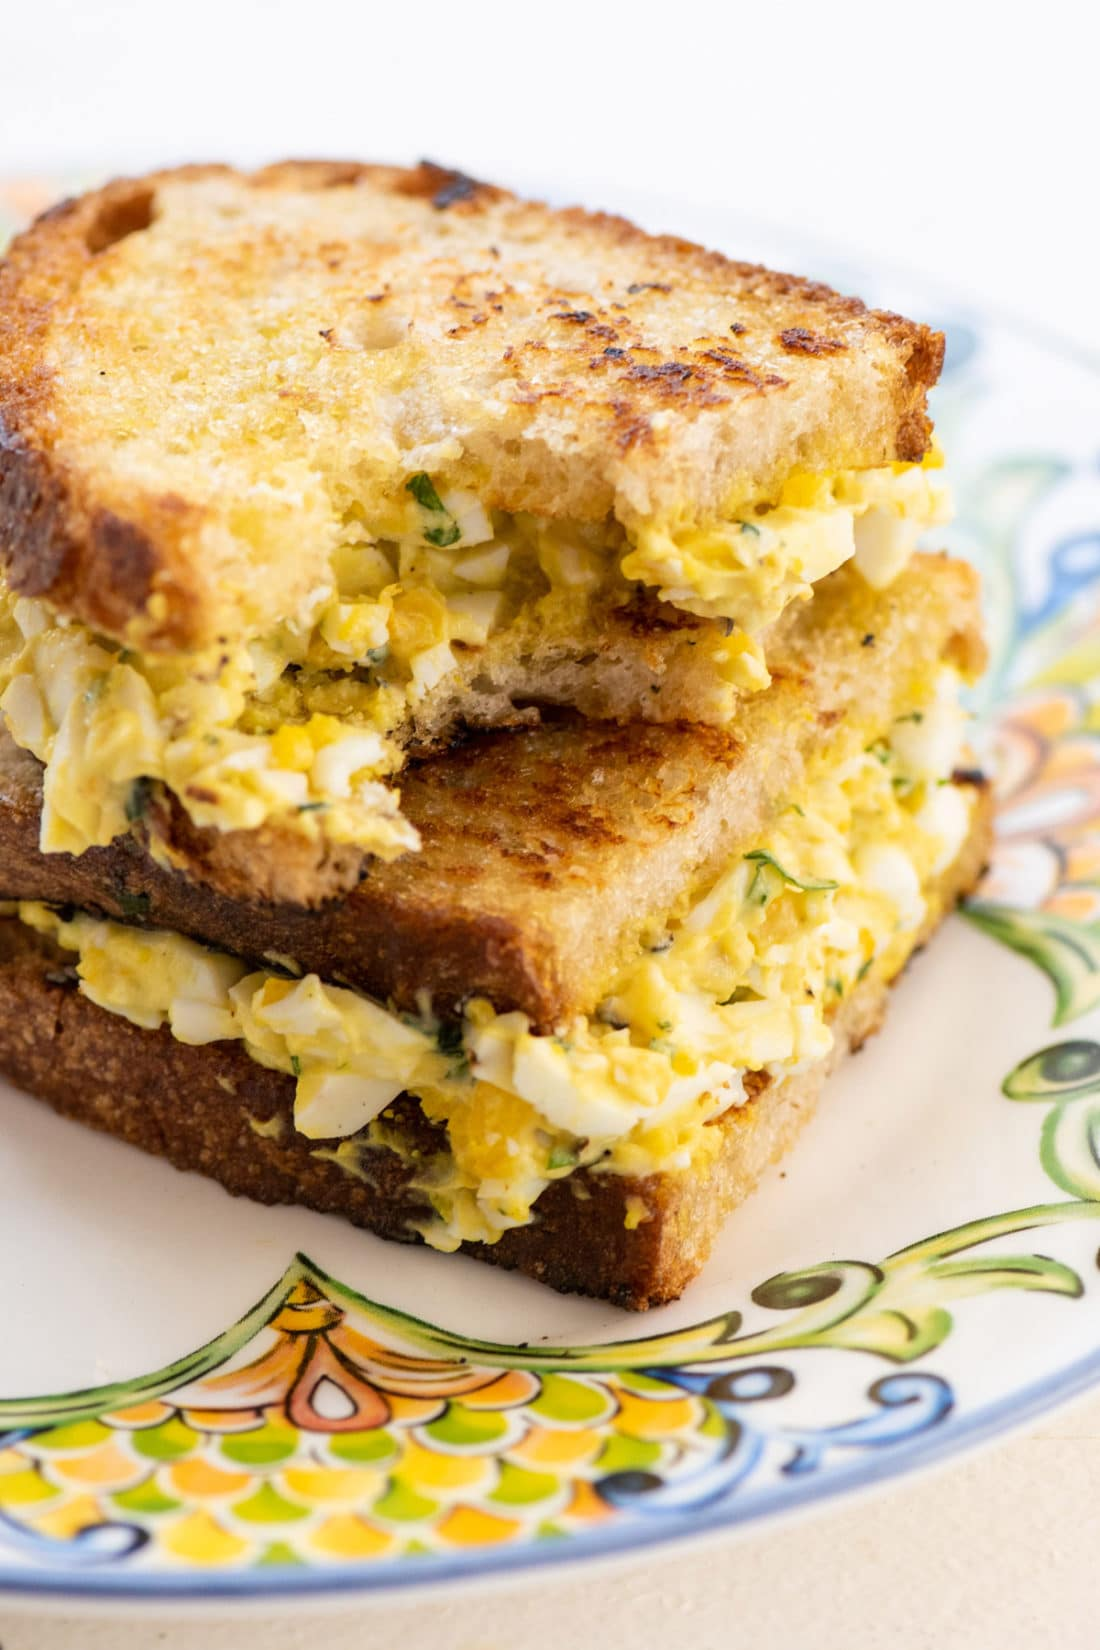 an egg salad sandwich with a bite taken out of it